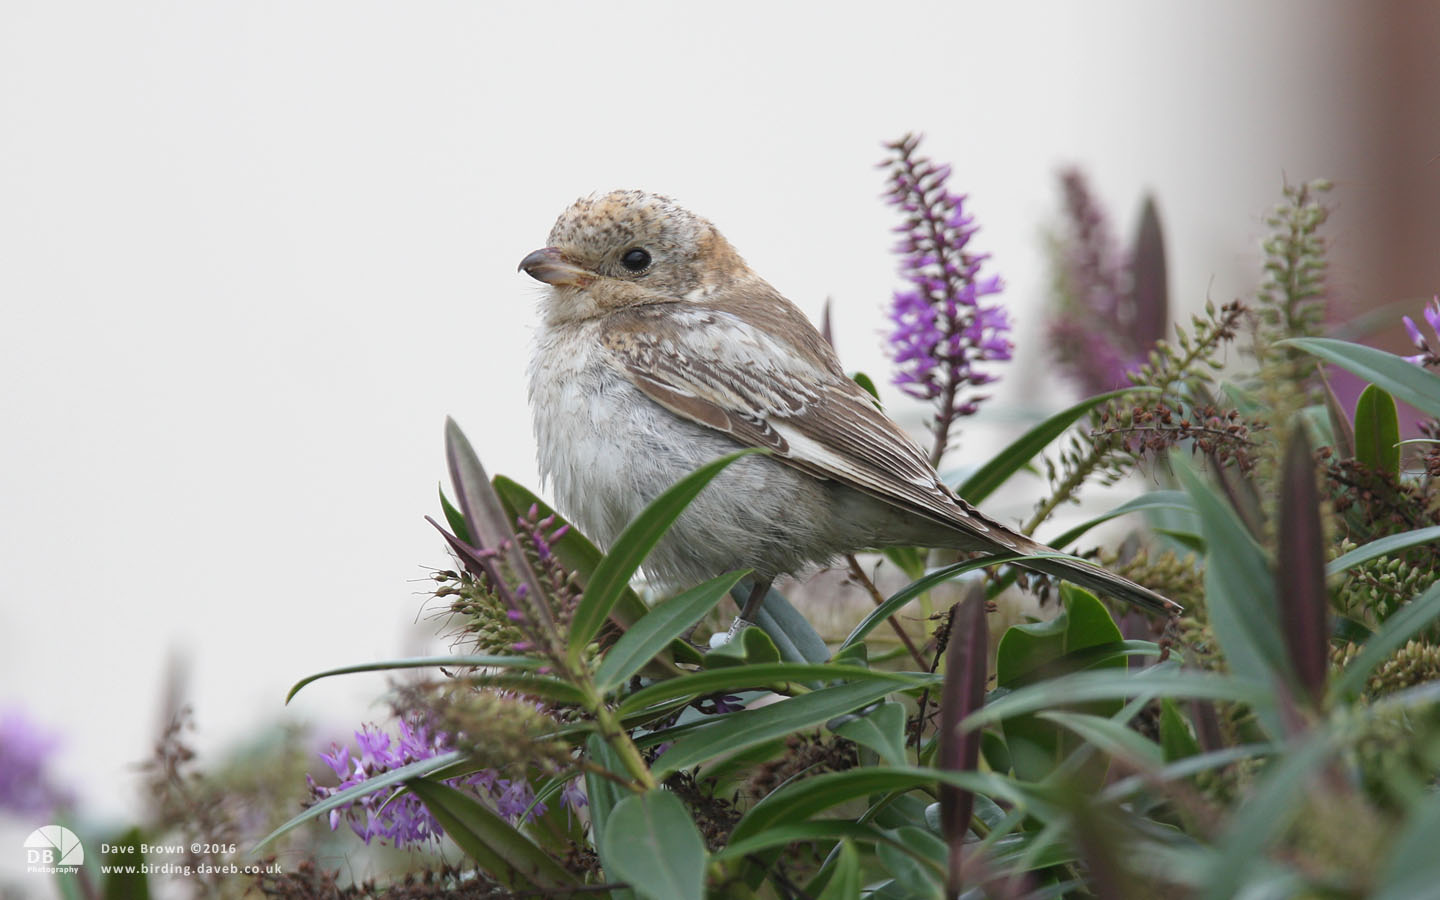 Woodchat Shrike at Hartlepool Headland, 2nd October 2010